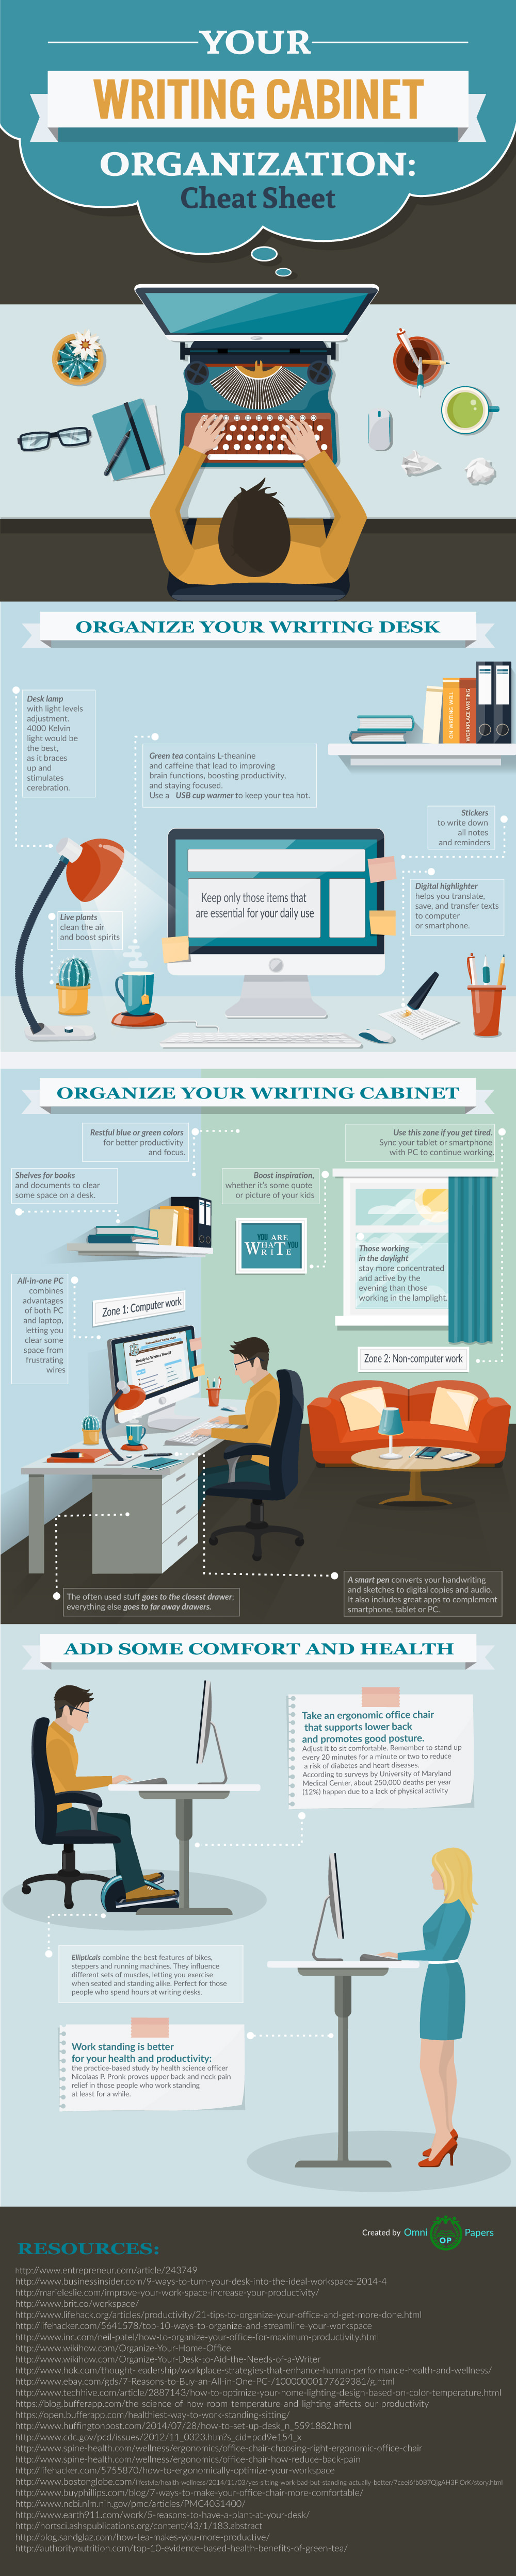 A well-organized workplace can boost productivity. Here is how to stay organized and increase your productivity at work.